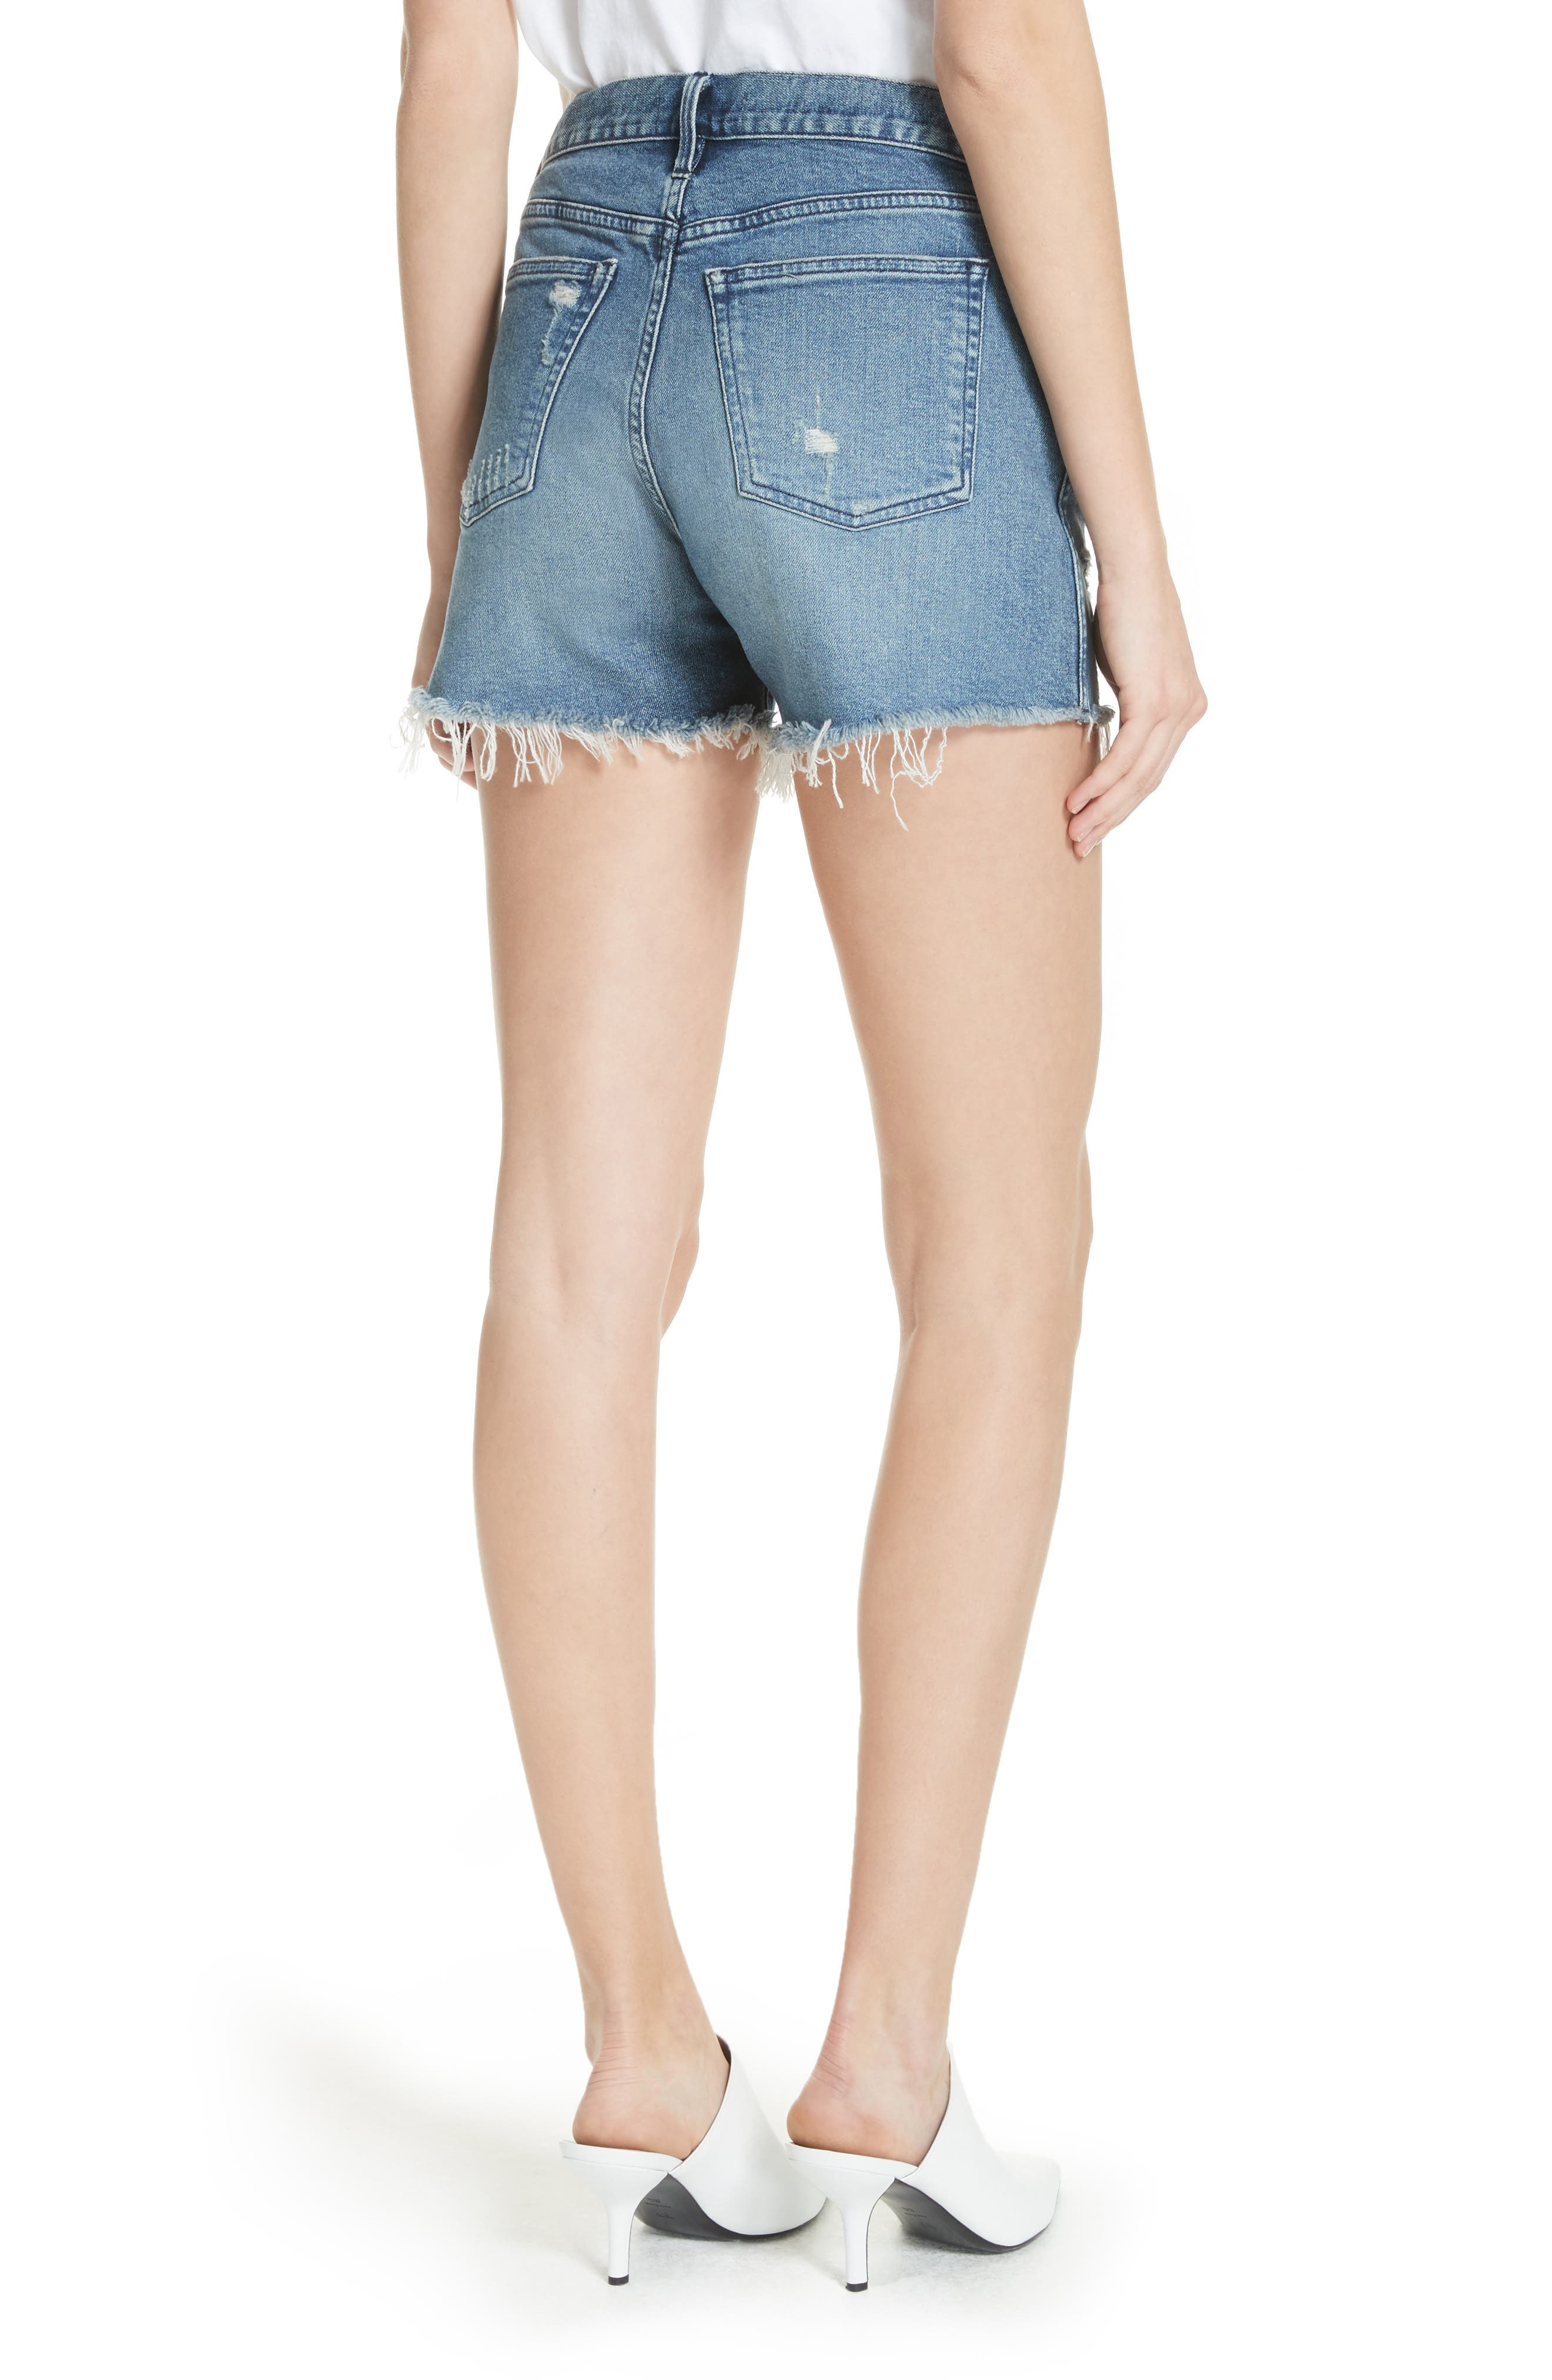 W4 Blake Raw Hem Denim Shorts,                             Alternate thumbnail 2, color,                             CHANCE